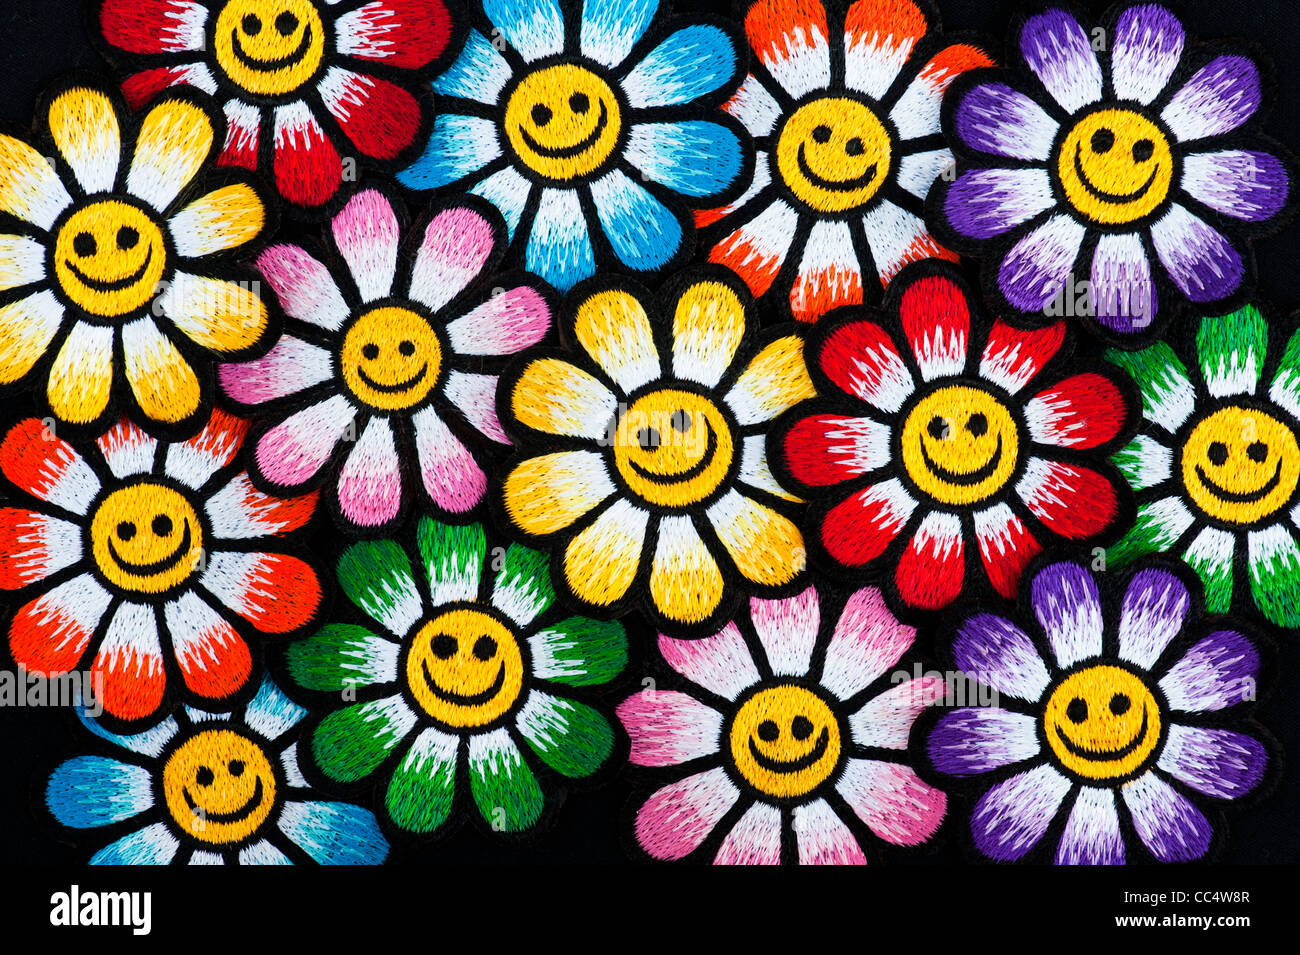 Embroidery iron on patches of Multicoloured smiley face flowers on a black background - Stock Image